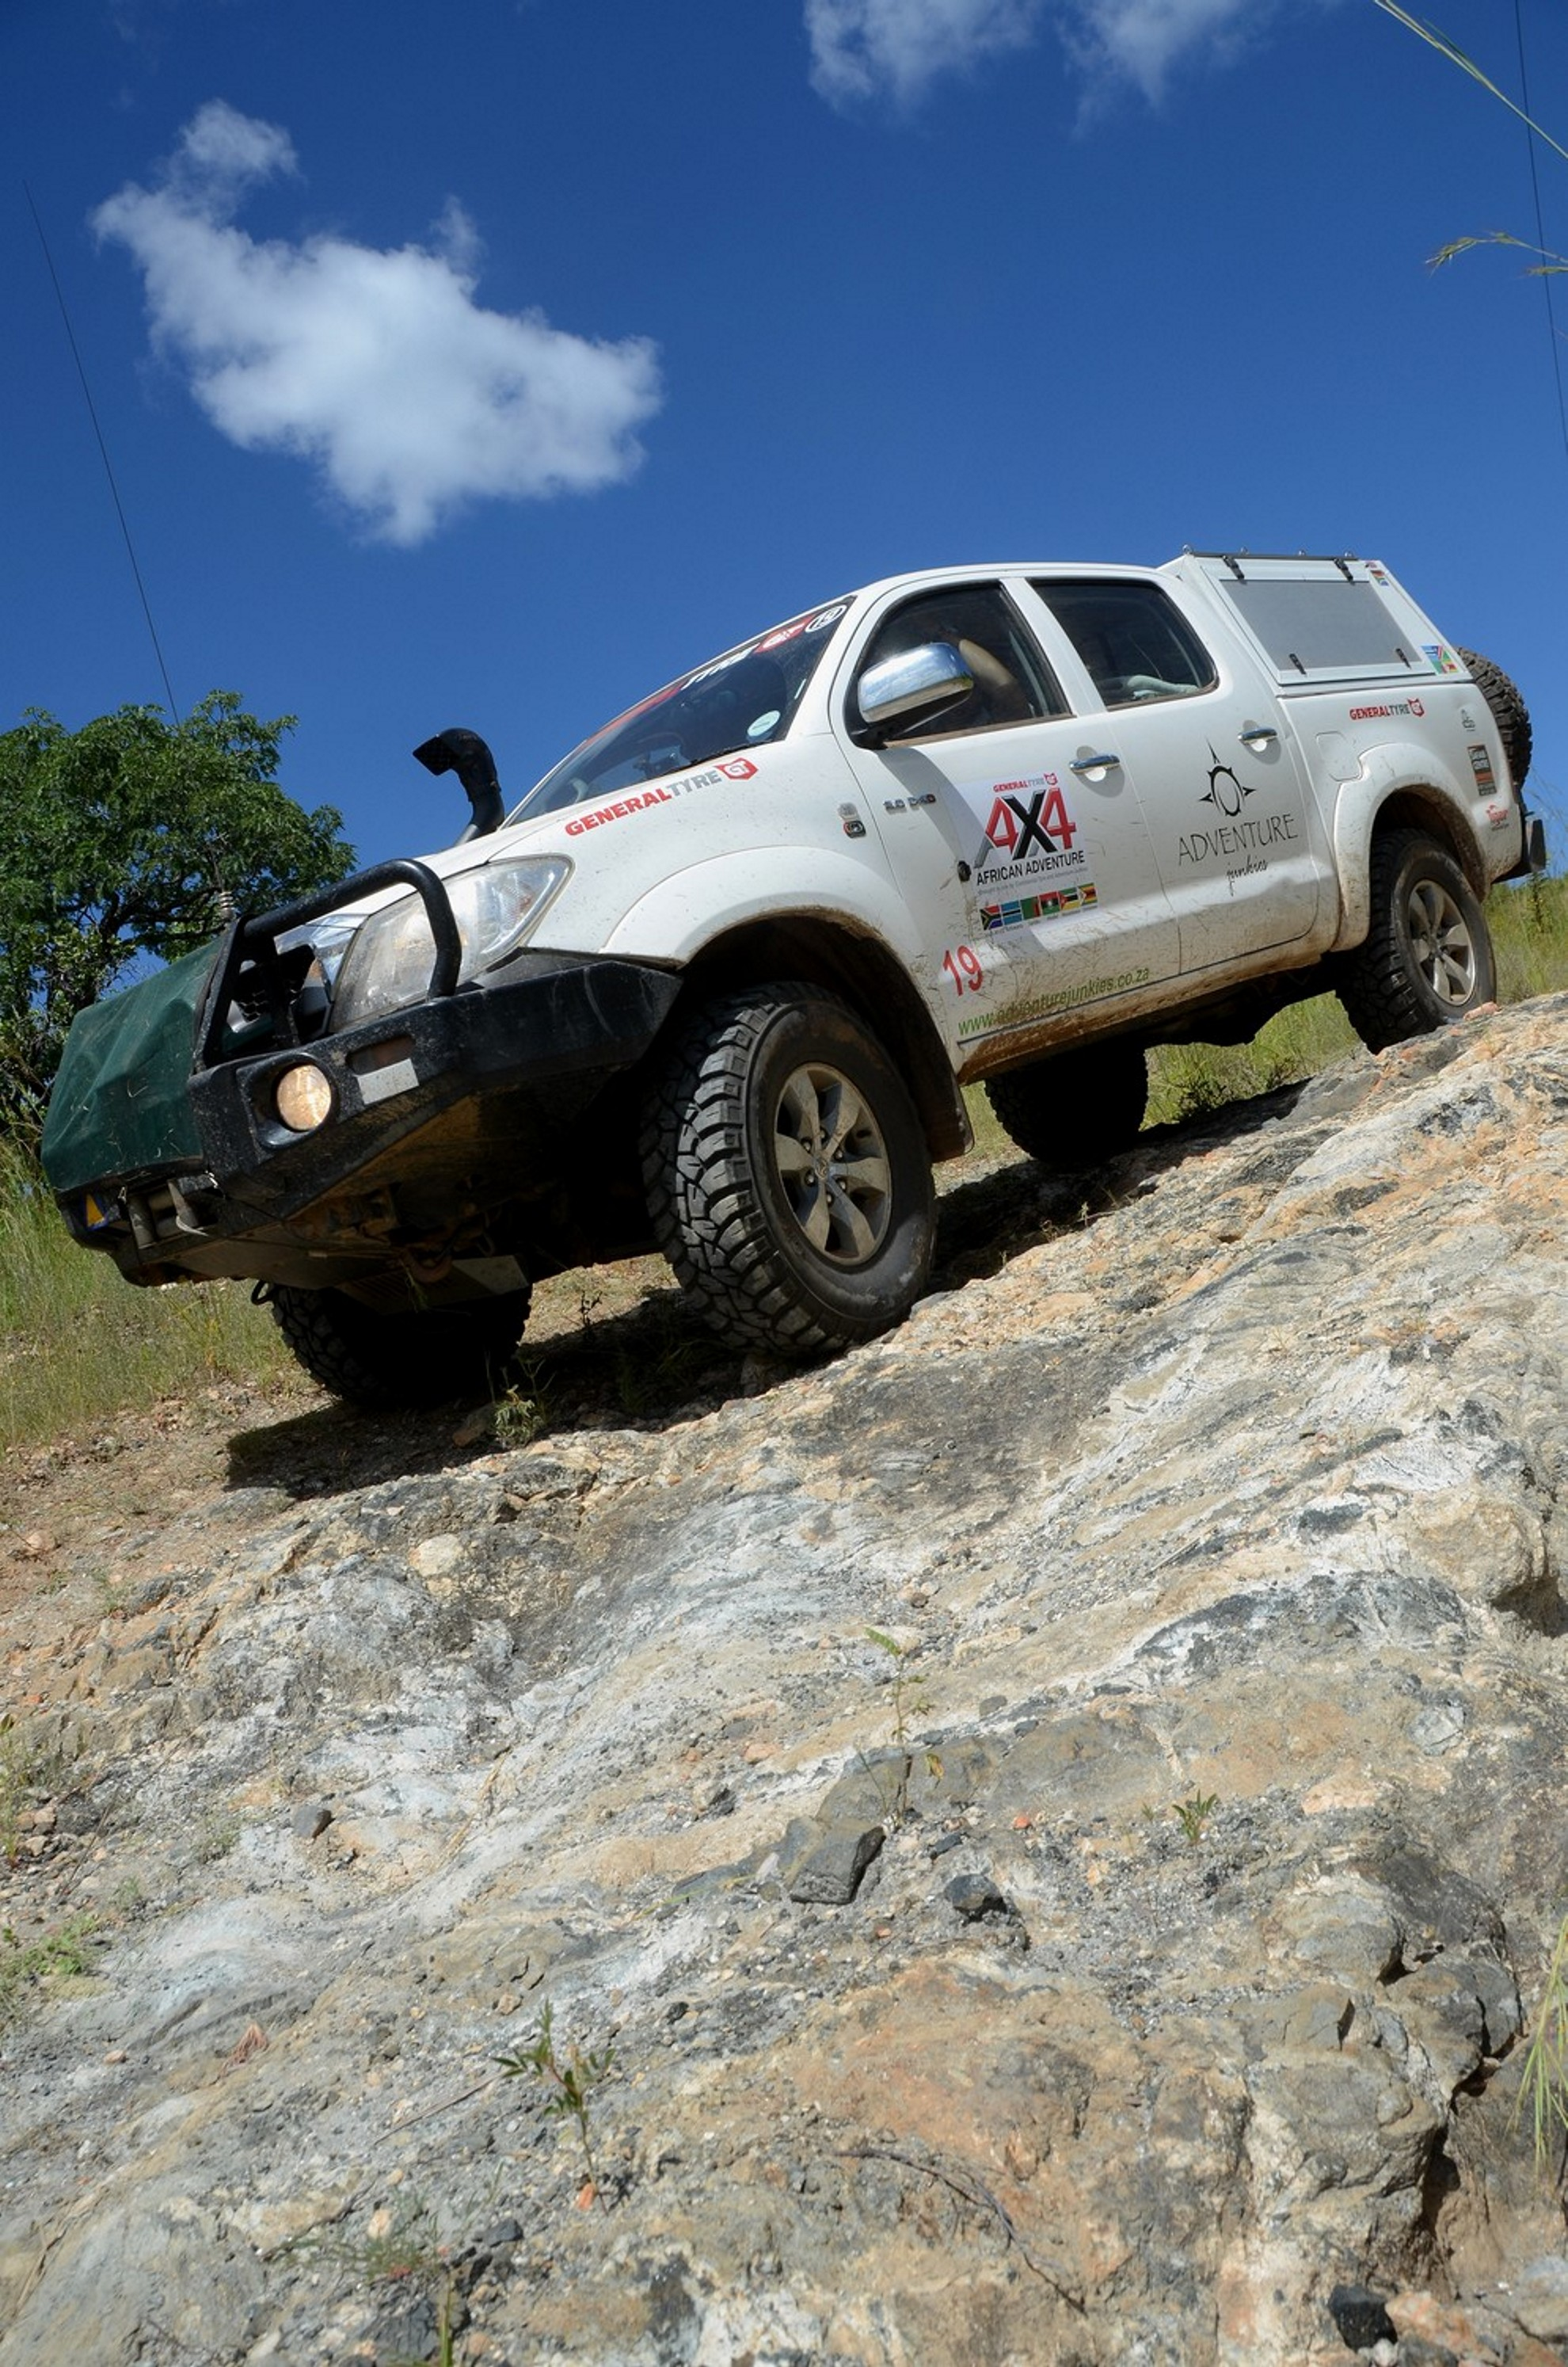 Toyota Rust de Winter 4x4